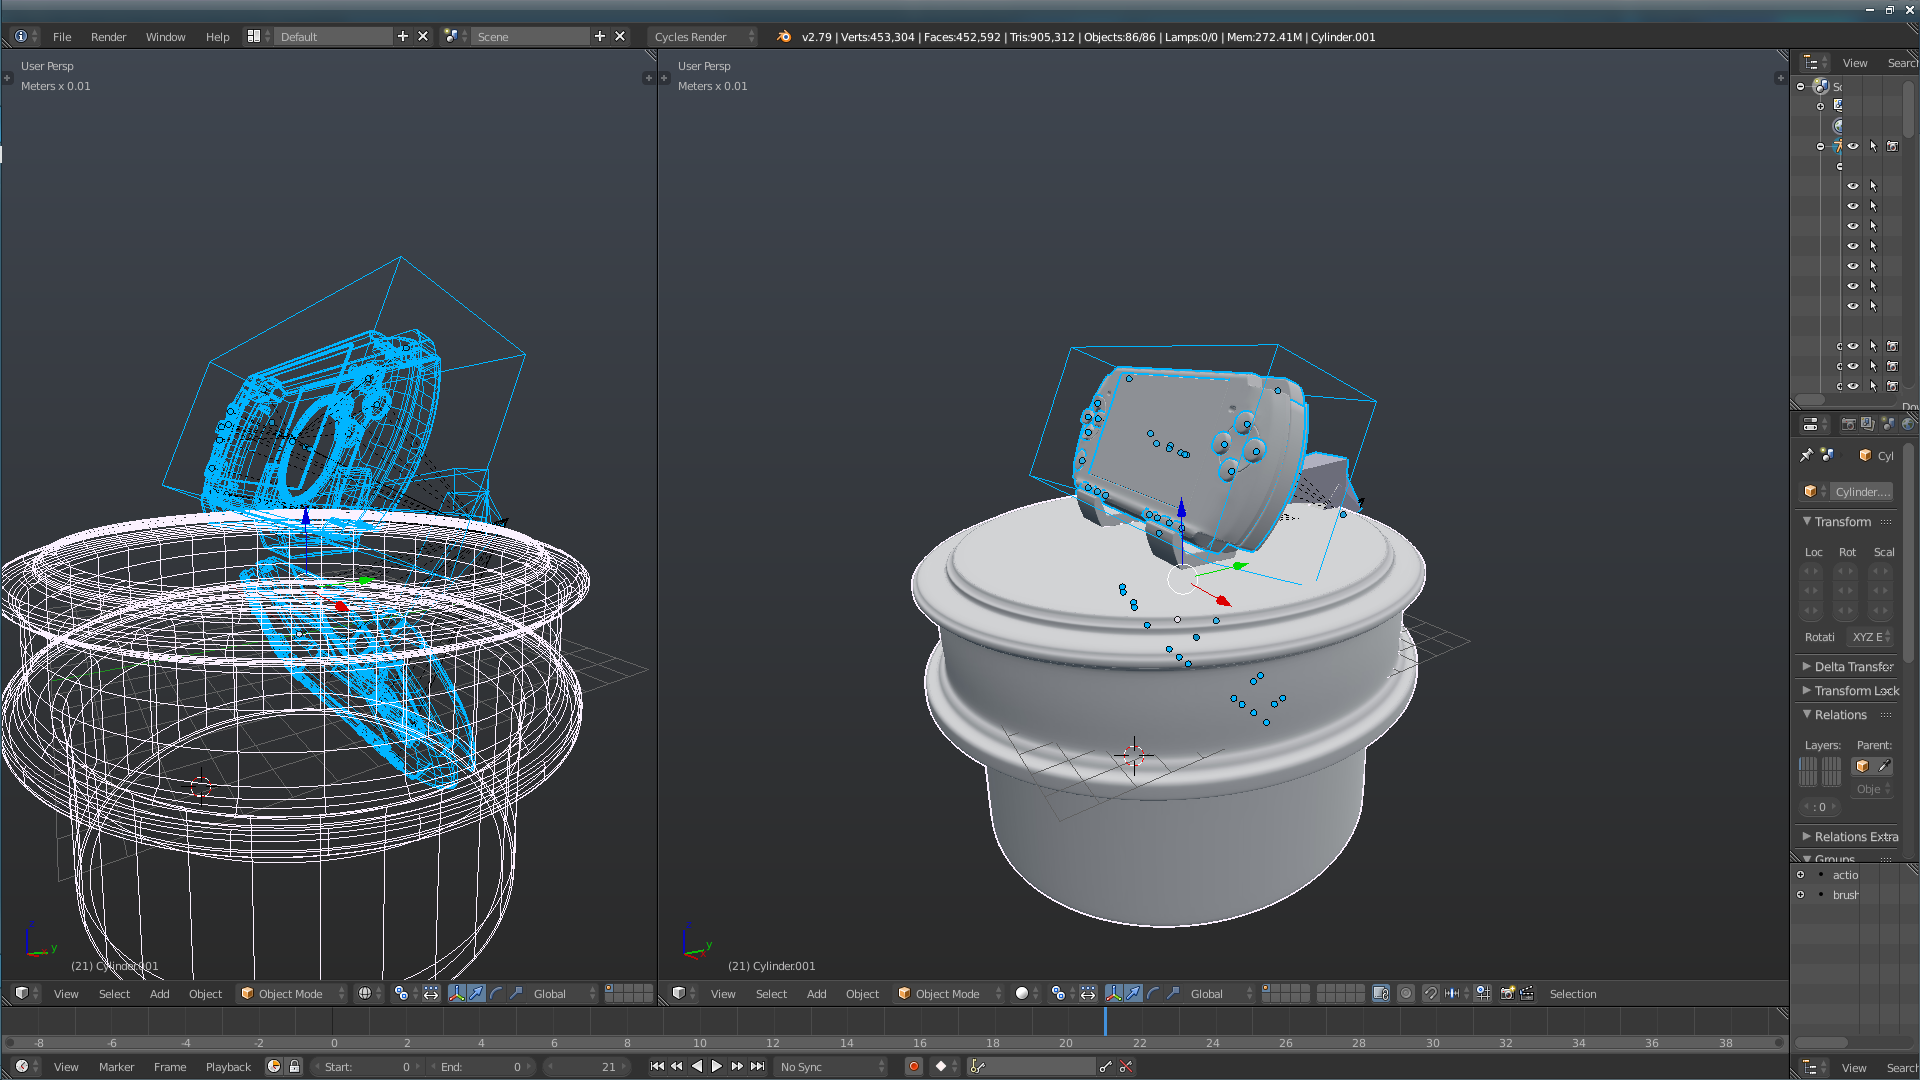 Blender Armature not importing correctly - Bones have